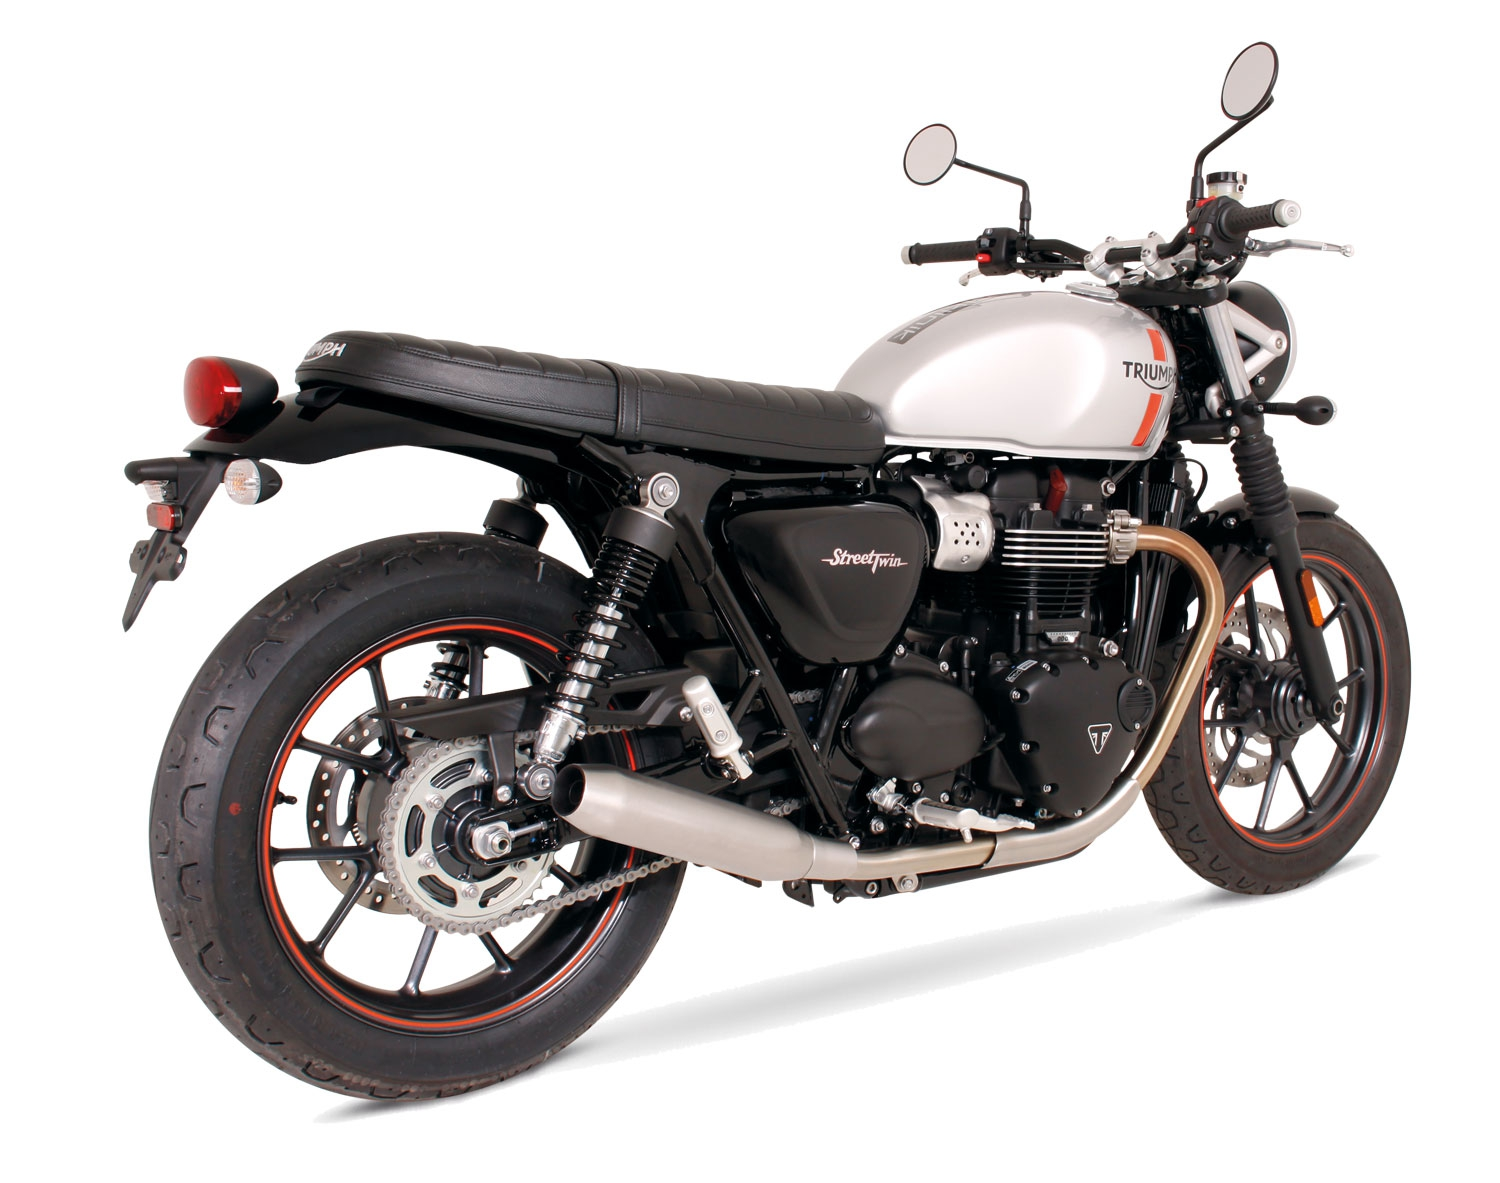 remus news bike info 07 16 triumph street twin. Black Bedroom Furniture Sets. Home Design Ideas